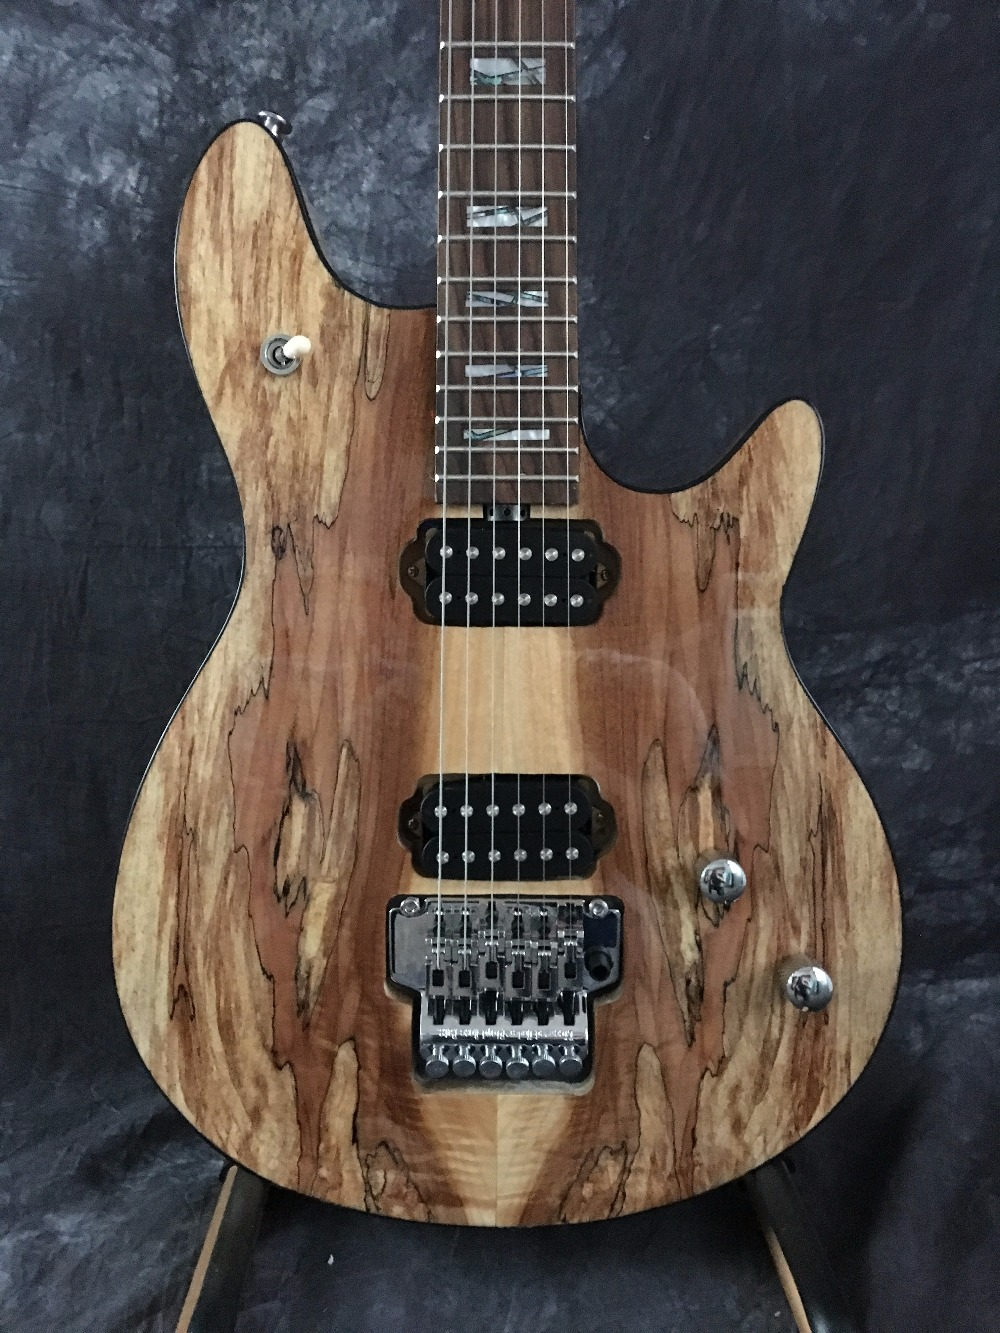 Chinese custom shop Wolfgang electric guitar natural wood with chrome Freud rose tremolo free shipping custom shop tl electric guitar classical tele 53 relics yellow milk color relic by hands high quality limited issue signature